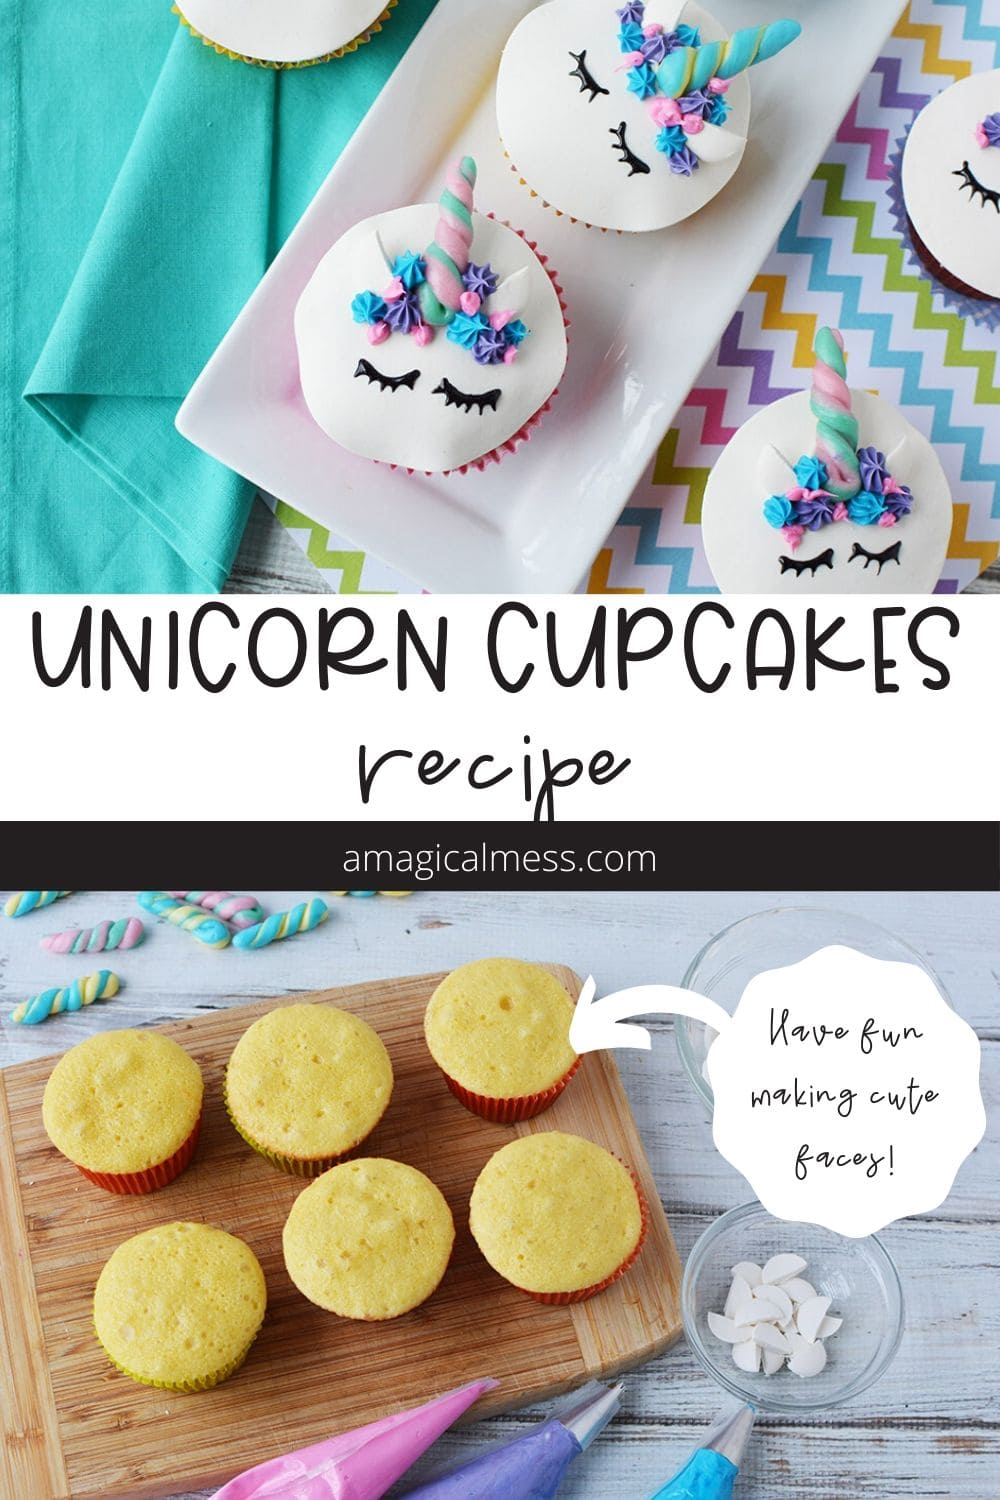 Plain cupcakes and decorated unicorn faces